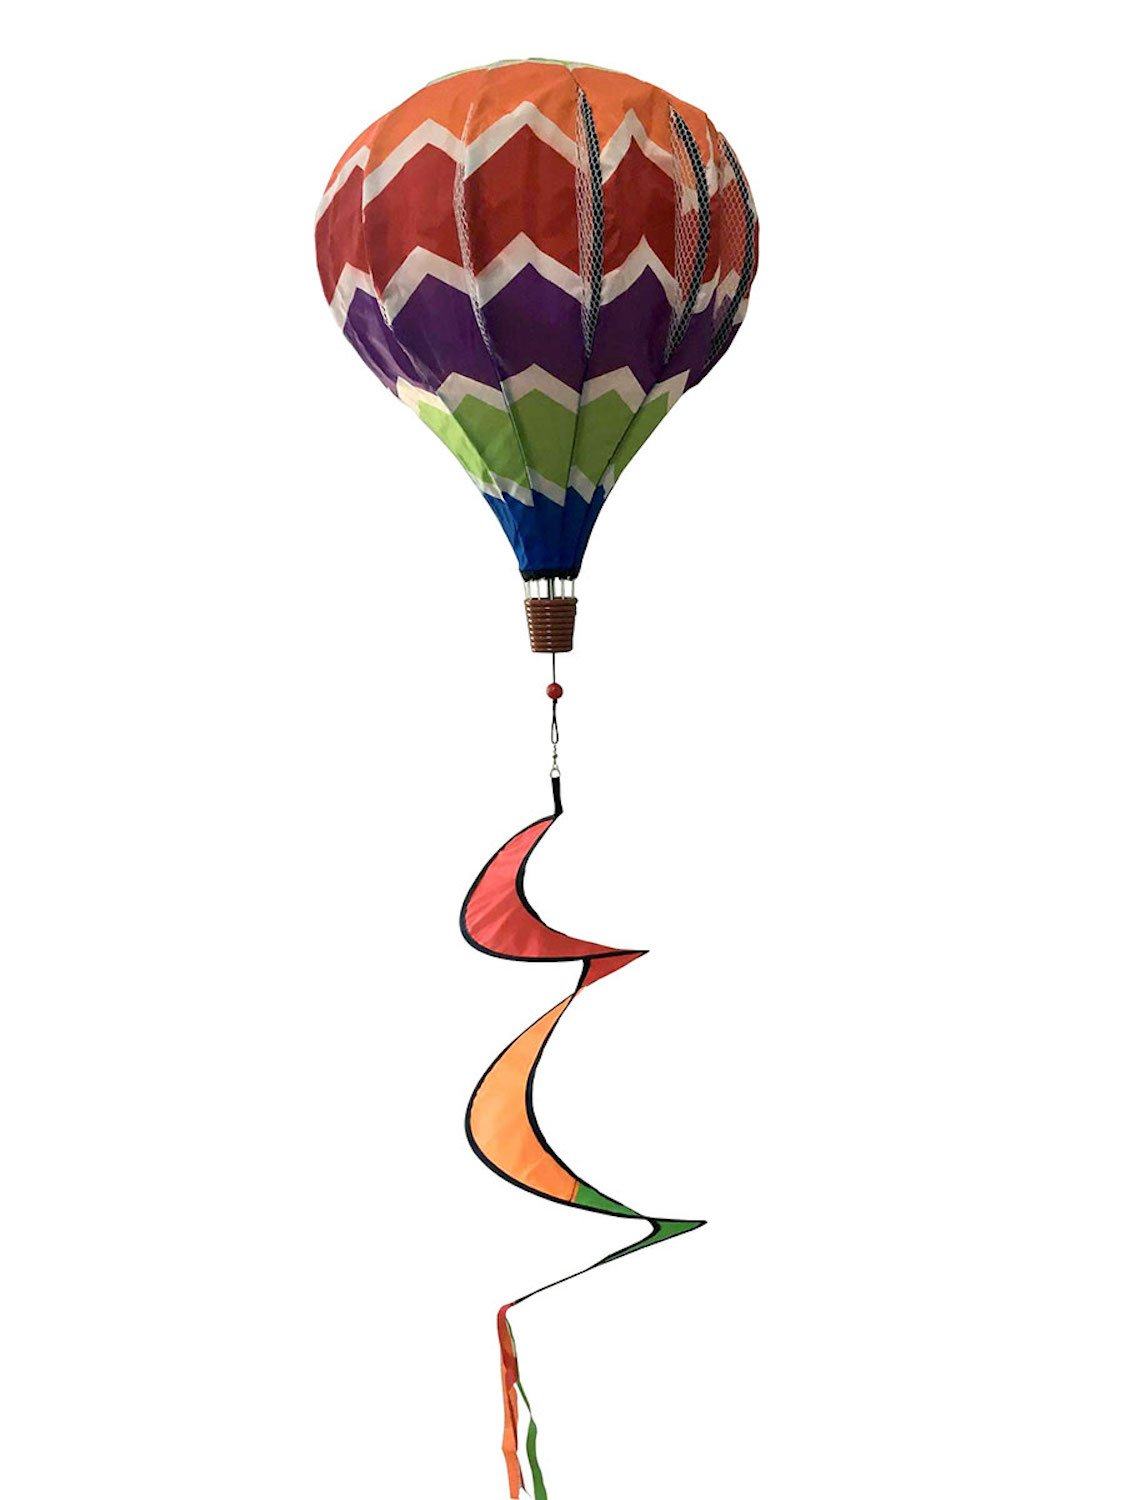 Multi-Color Deluxe Hot Air Balloon Wind Twister Everyday 54''L Briarwood Lane